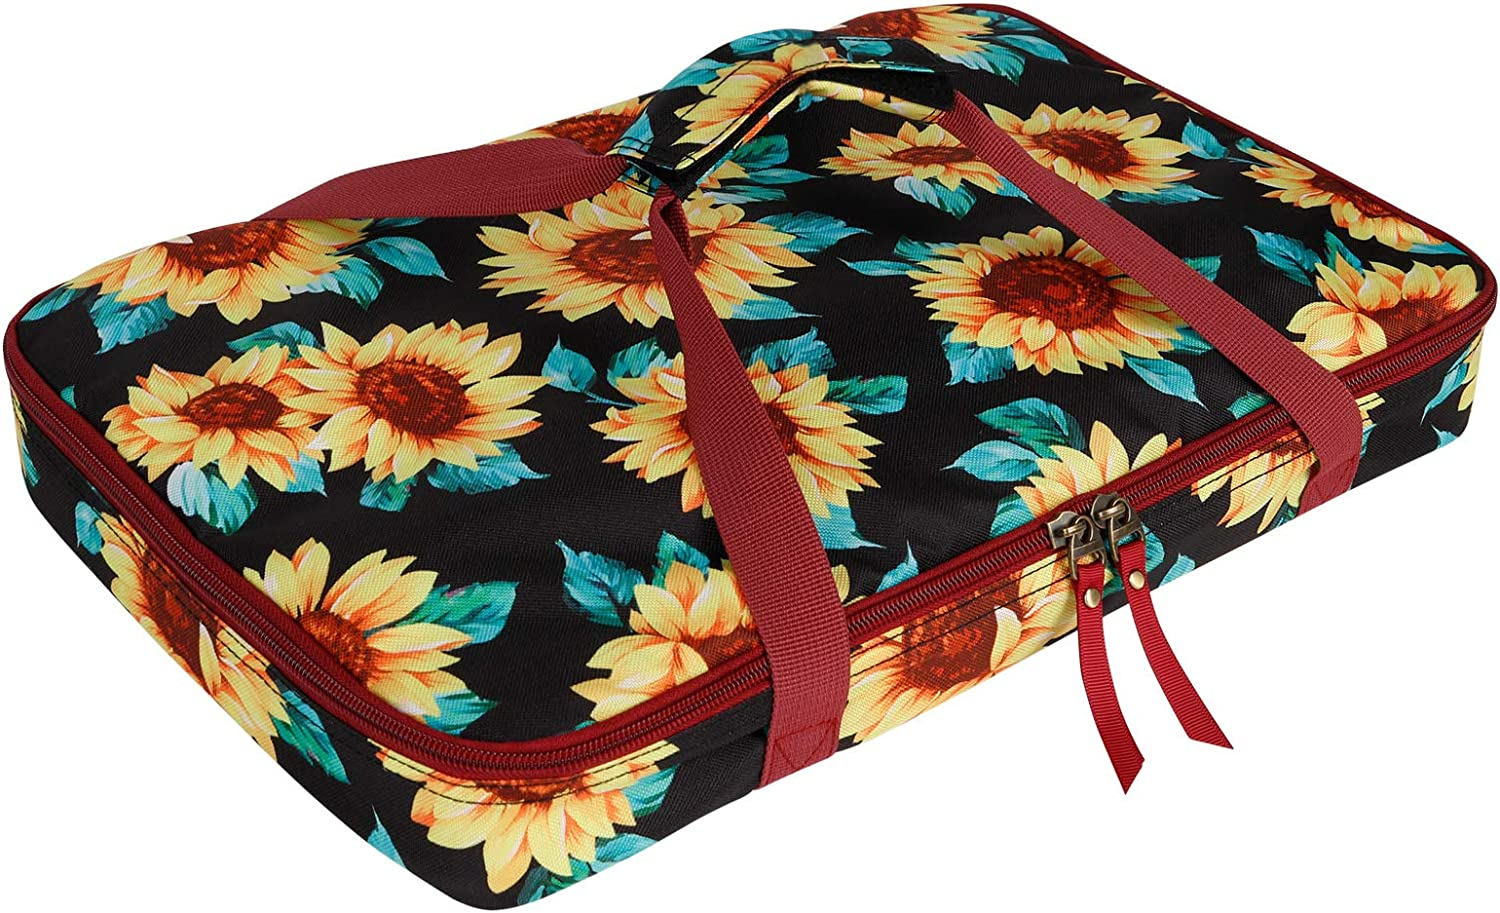 Natur@cho Insulated Casserole Travel Lunch Carry Bag, Thermal Food Lasagna Lugger Tote Carrier for Potluck Parties, Picnic, Beach Cookout Fits 9 x 13 Inches Casserole Dish